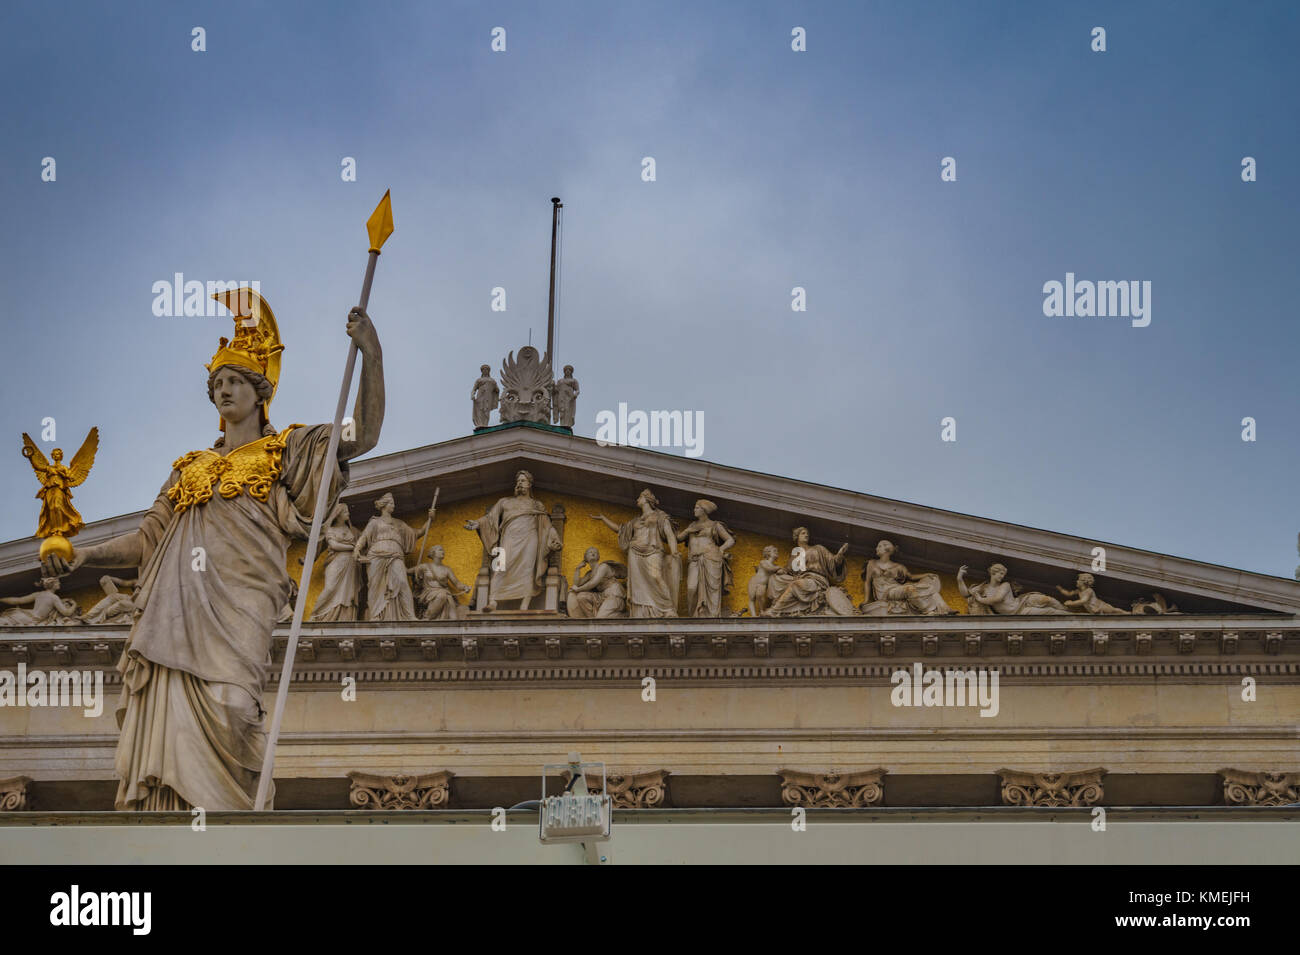 Athena the defender statue. The goddess of science and wisdom, Located in front of the Austrian Parliament in Vienna - Stock Image